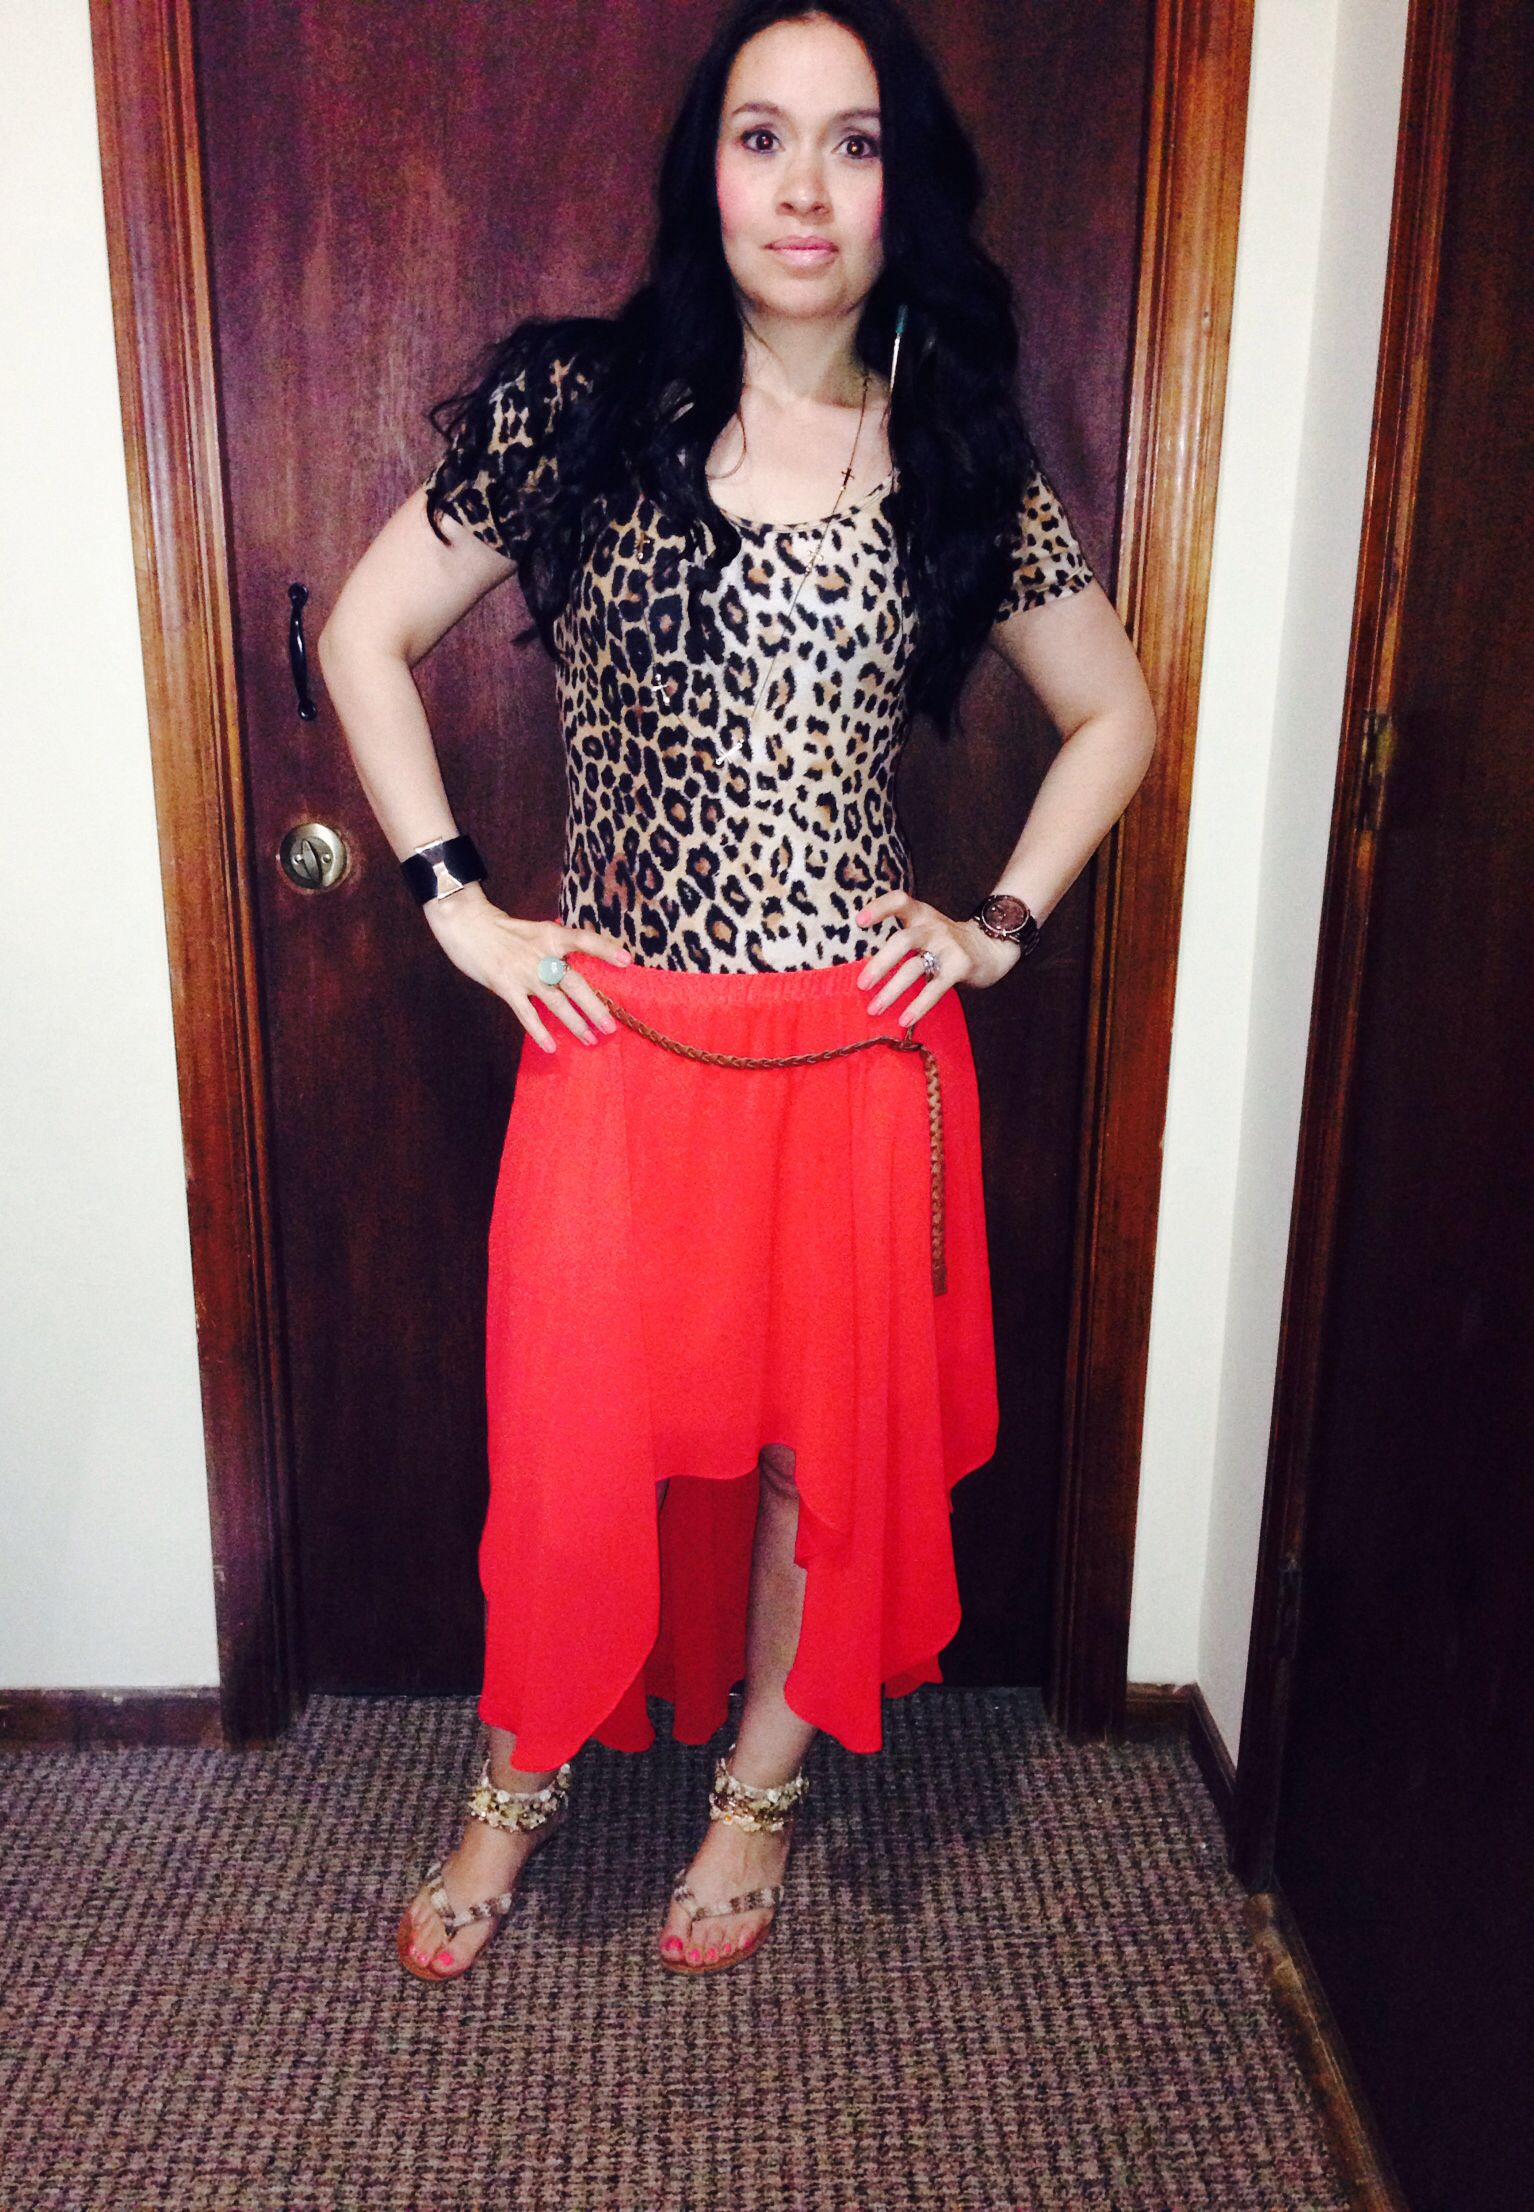 Perfect Spring Outfit... #casualdressy #cheetah #red #hi/lowskirt